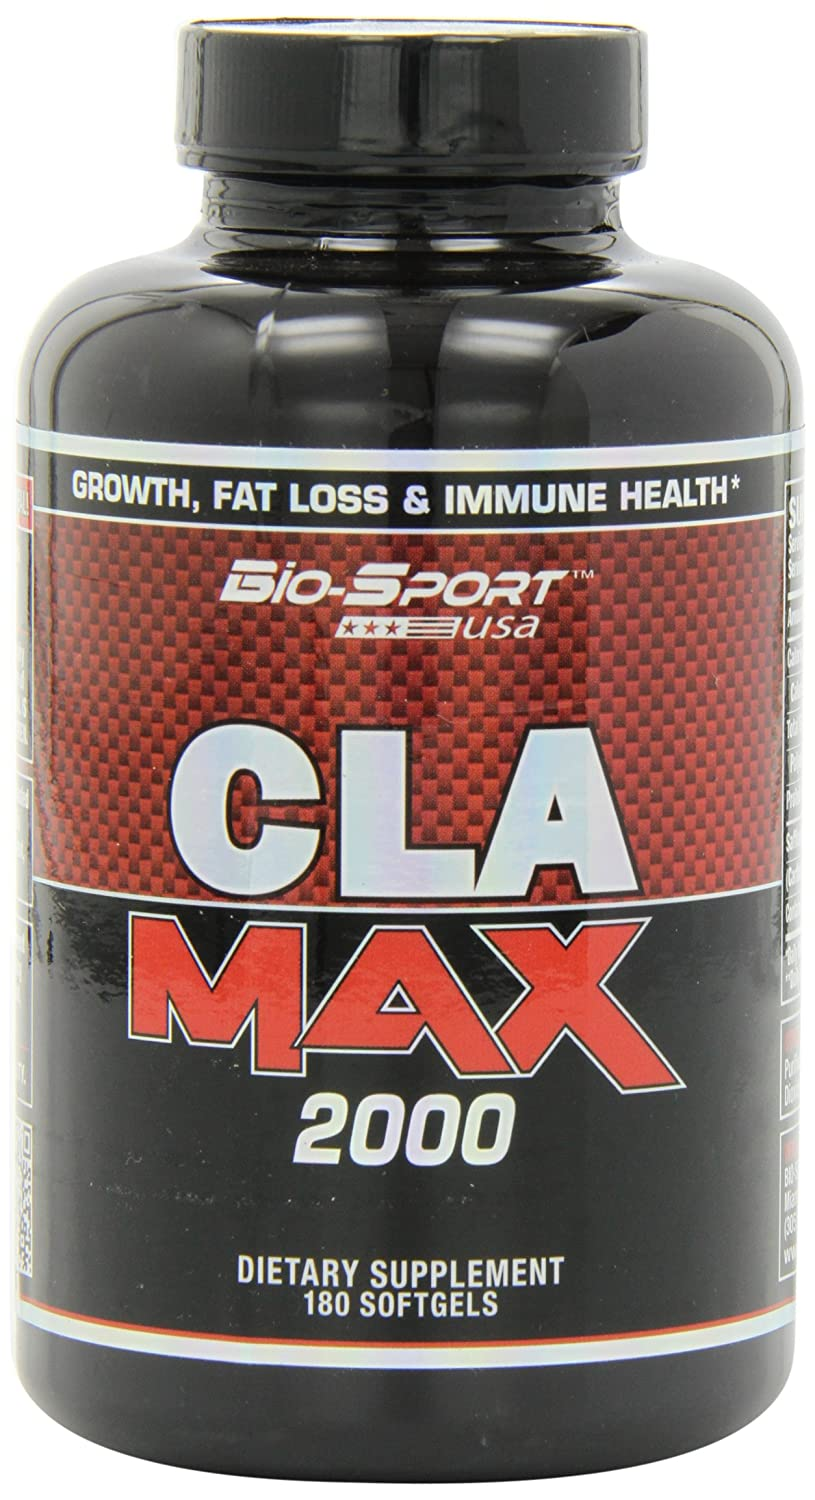 Biosport USA Cla Max 2000 Weight Loss Capsules, 180 Count